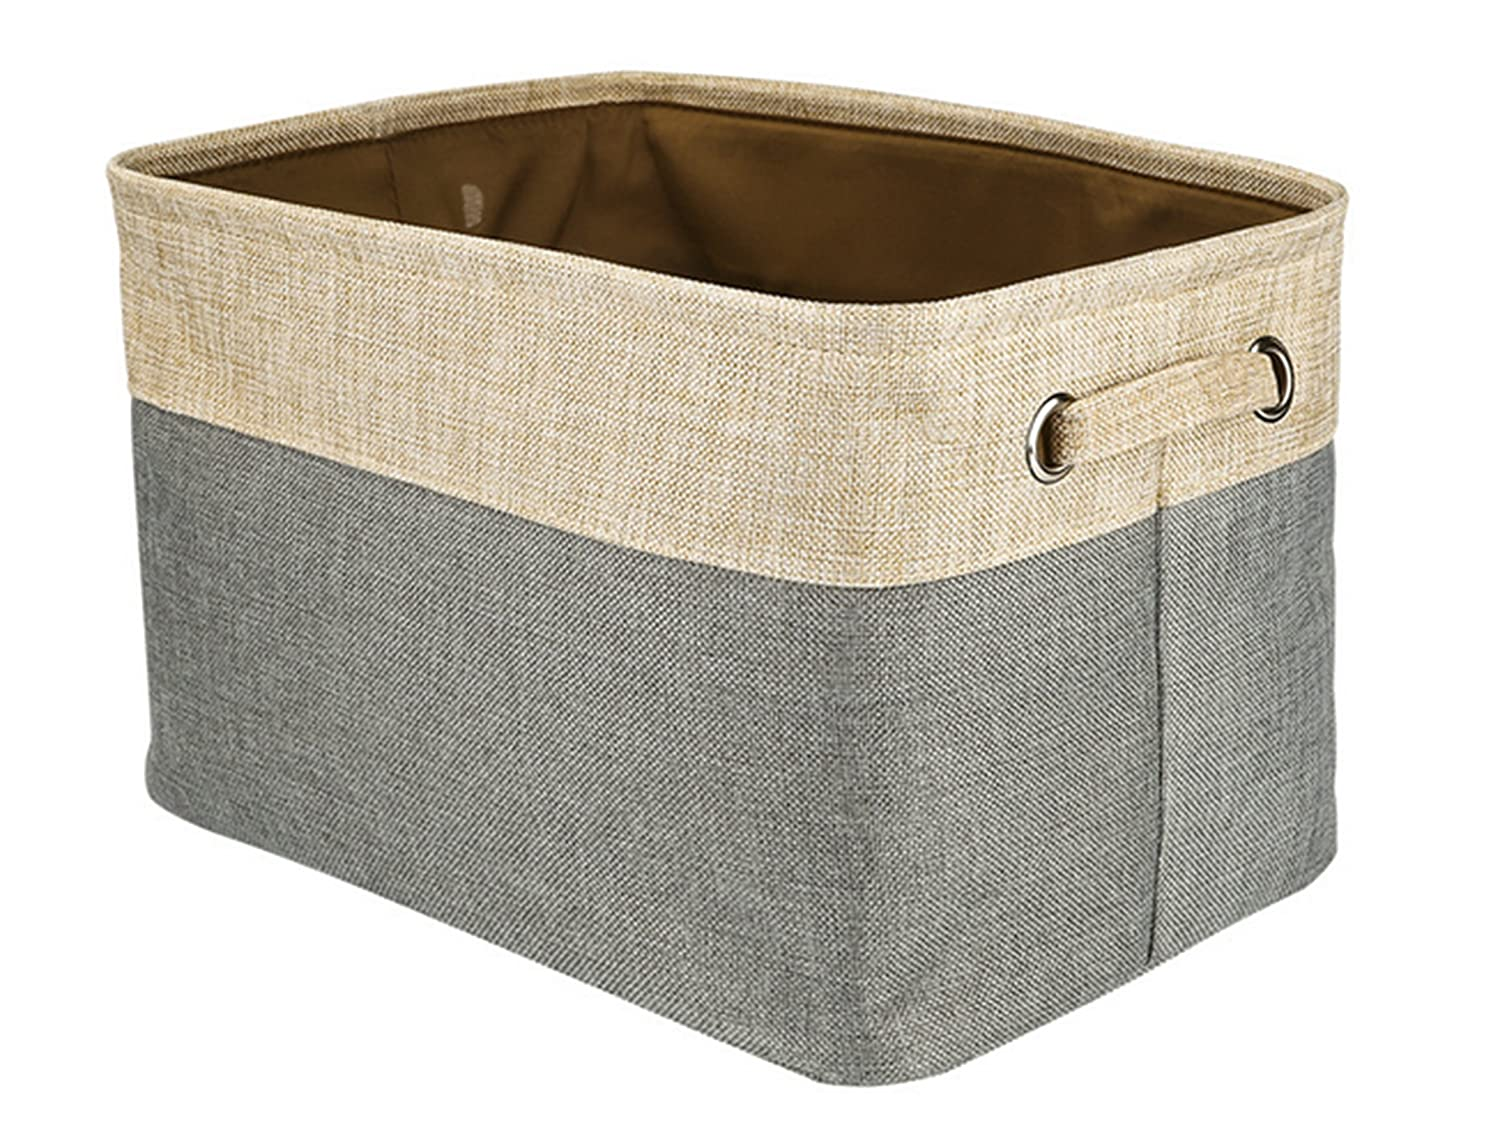 Square Natural Linen & Cotton Fabric Storage Bin Shelves Storage Basket with Handles-for organizing Baby Toys Bins,Kids Toys,Baby Clothing,Children Books, Gift Baskets(15×10×9